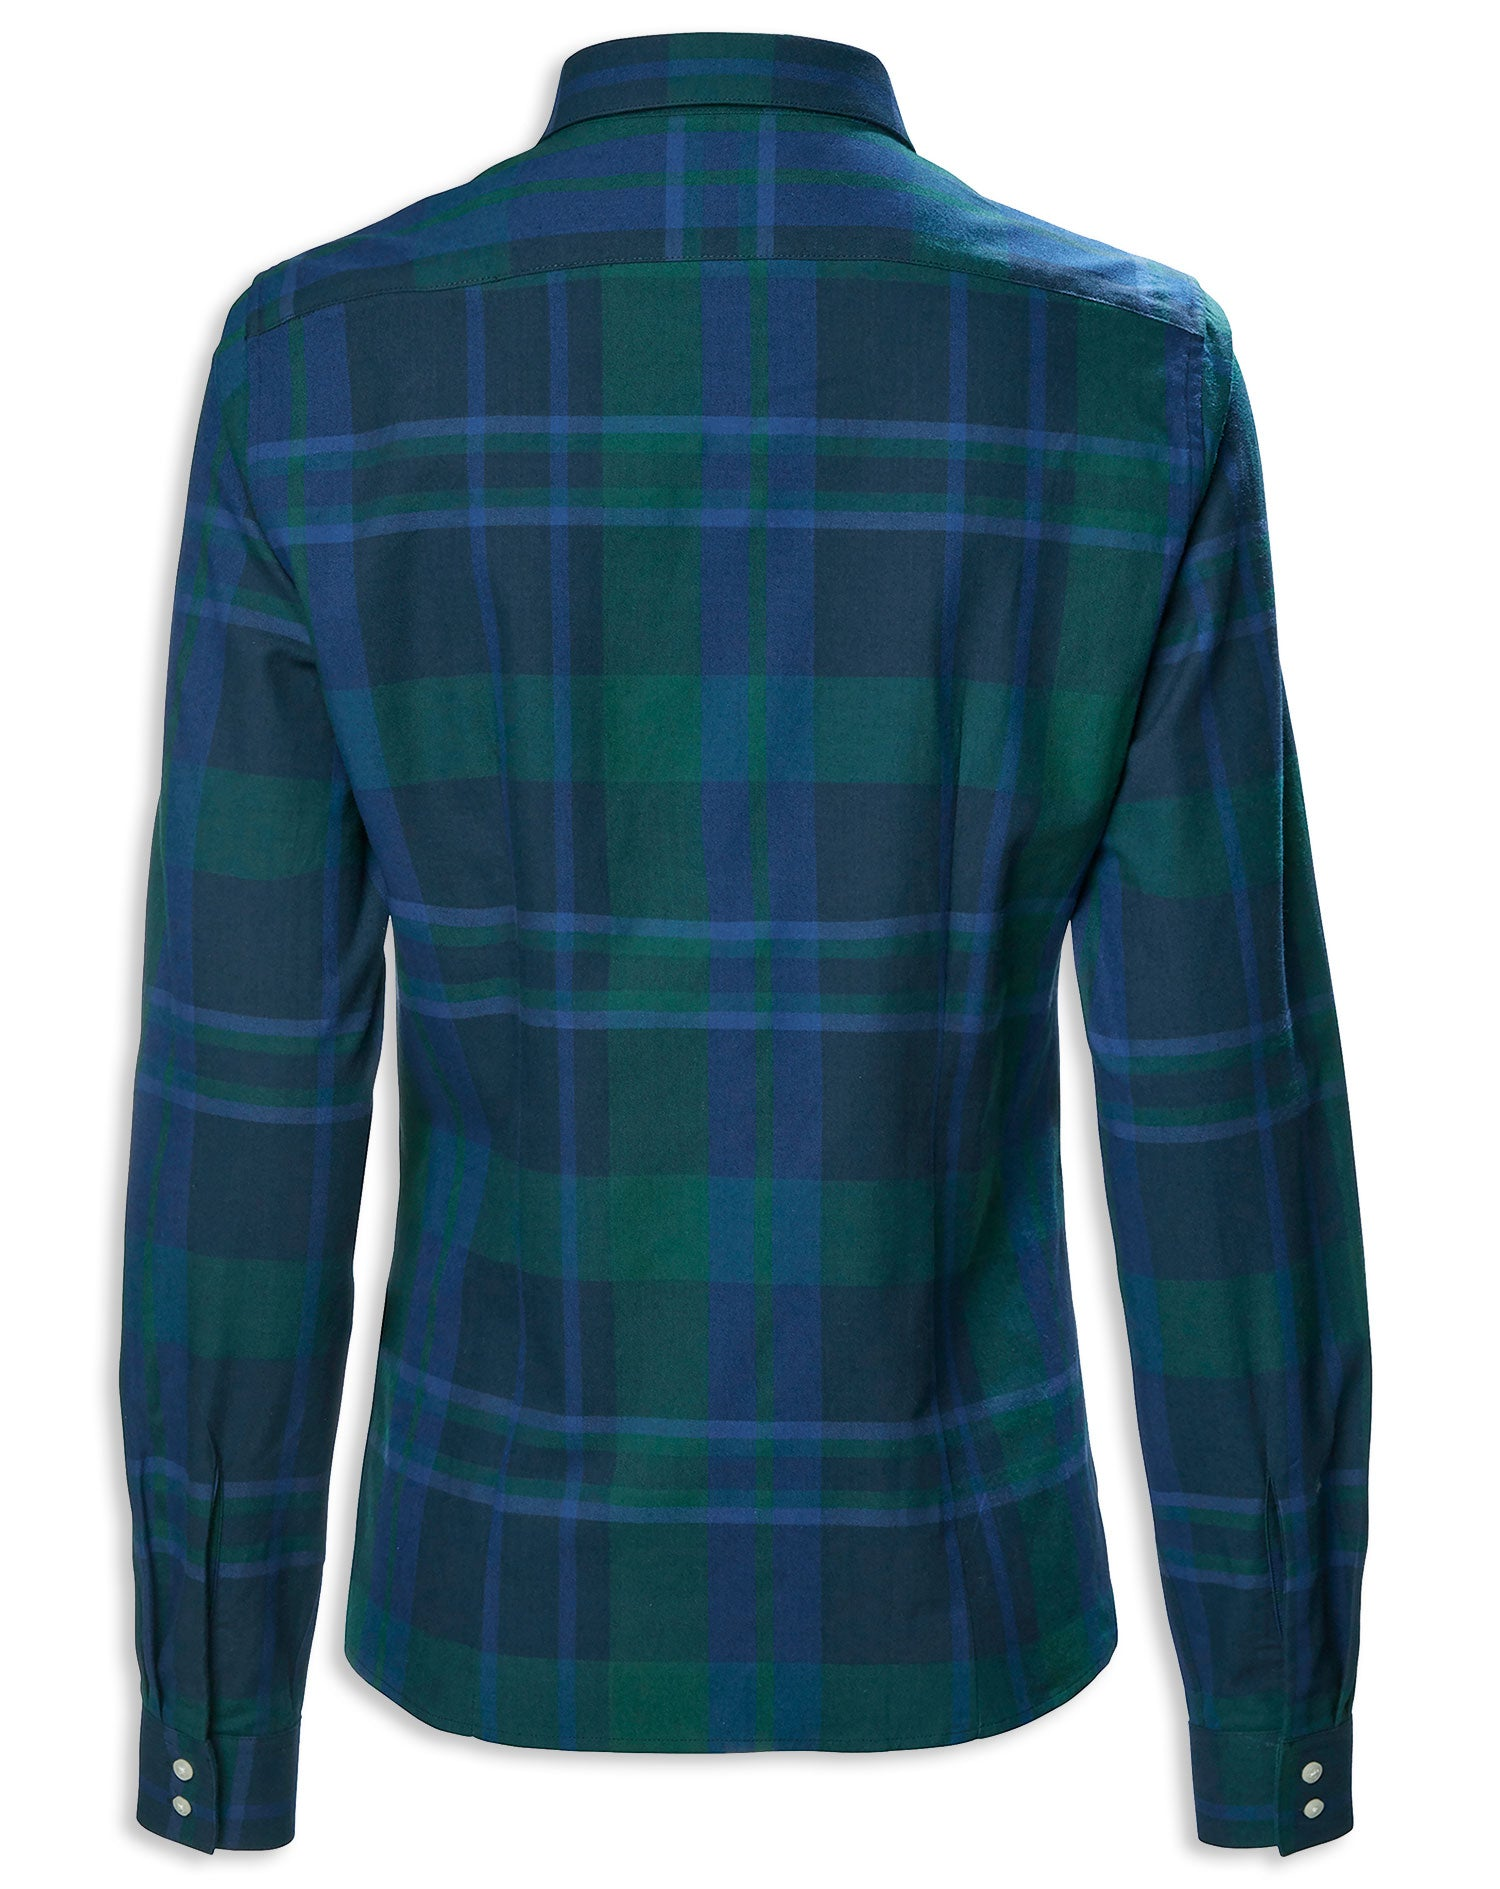 Highland Blue Navy Green Plaid Tartan Shirt